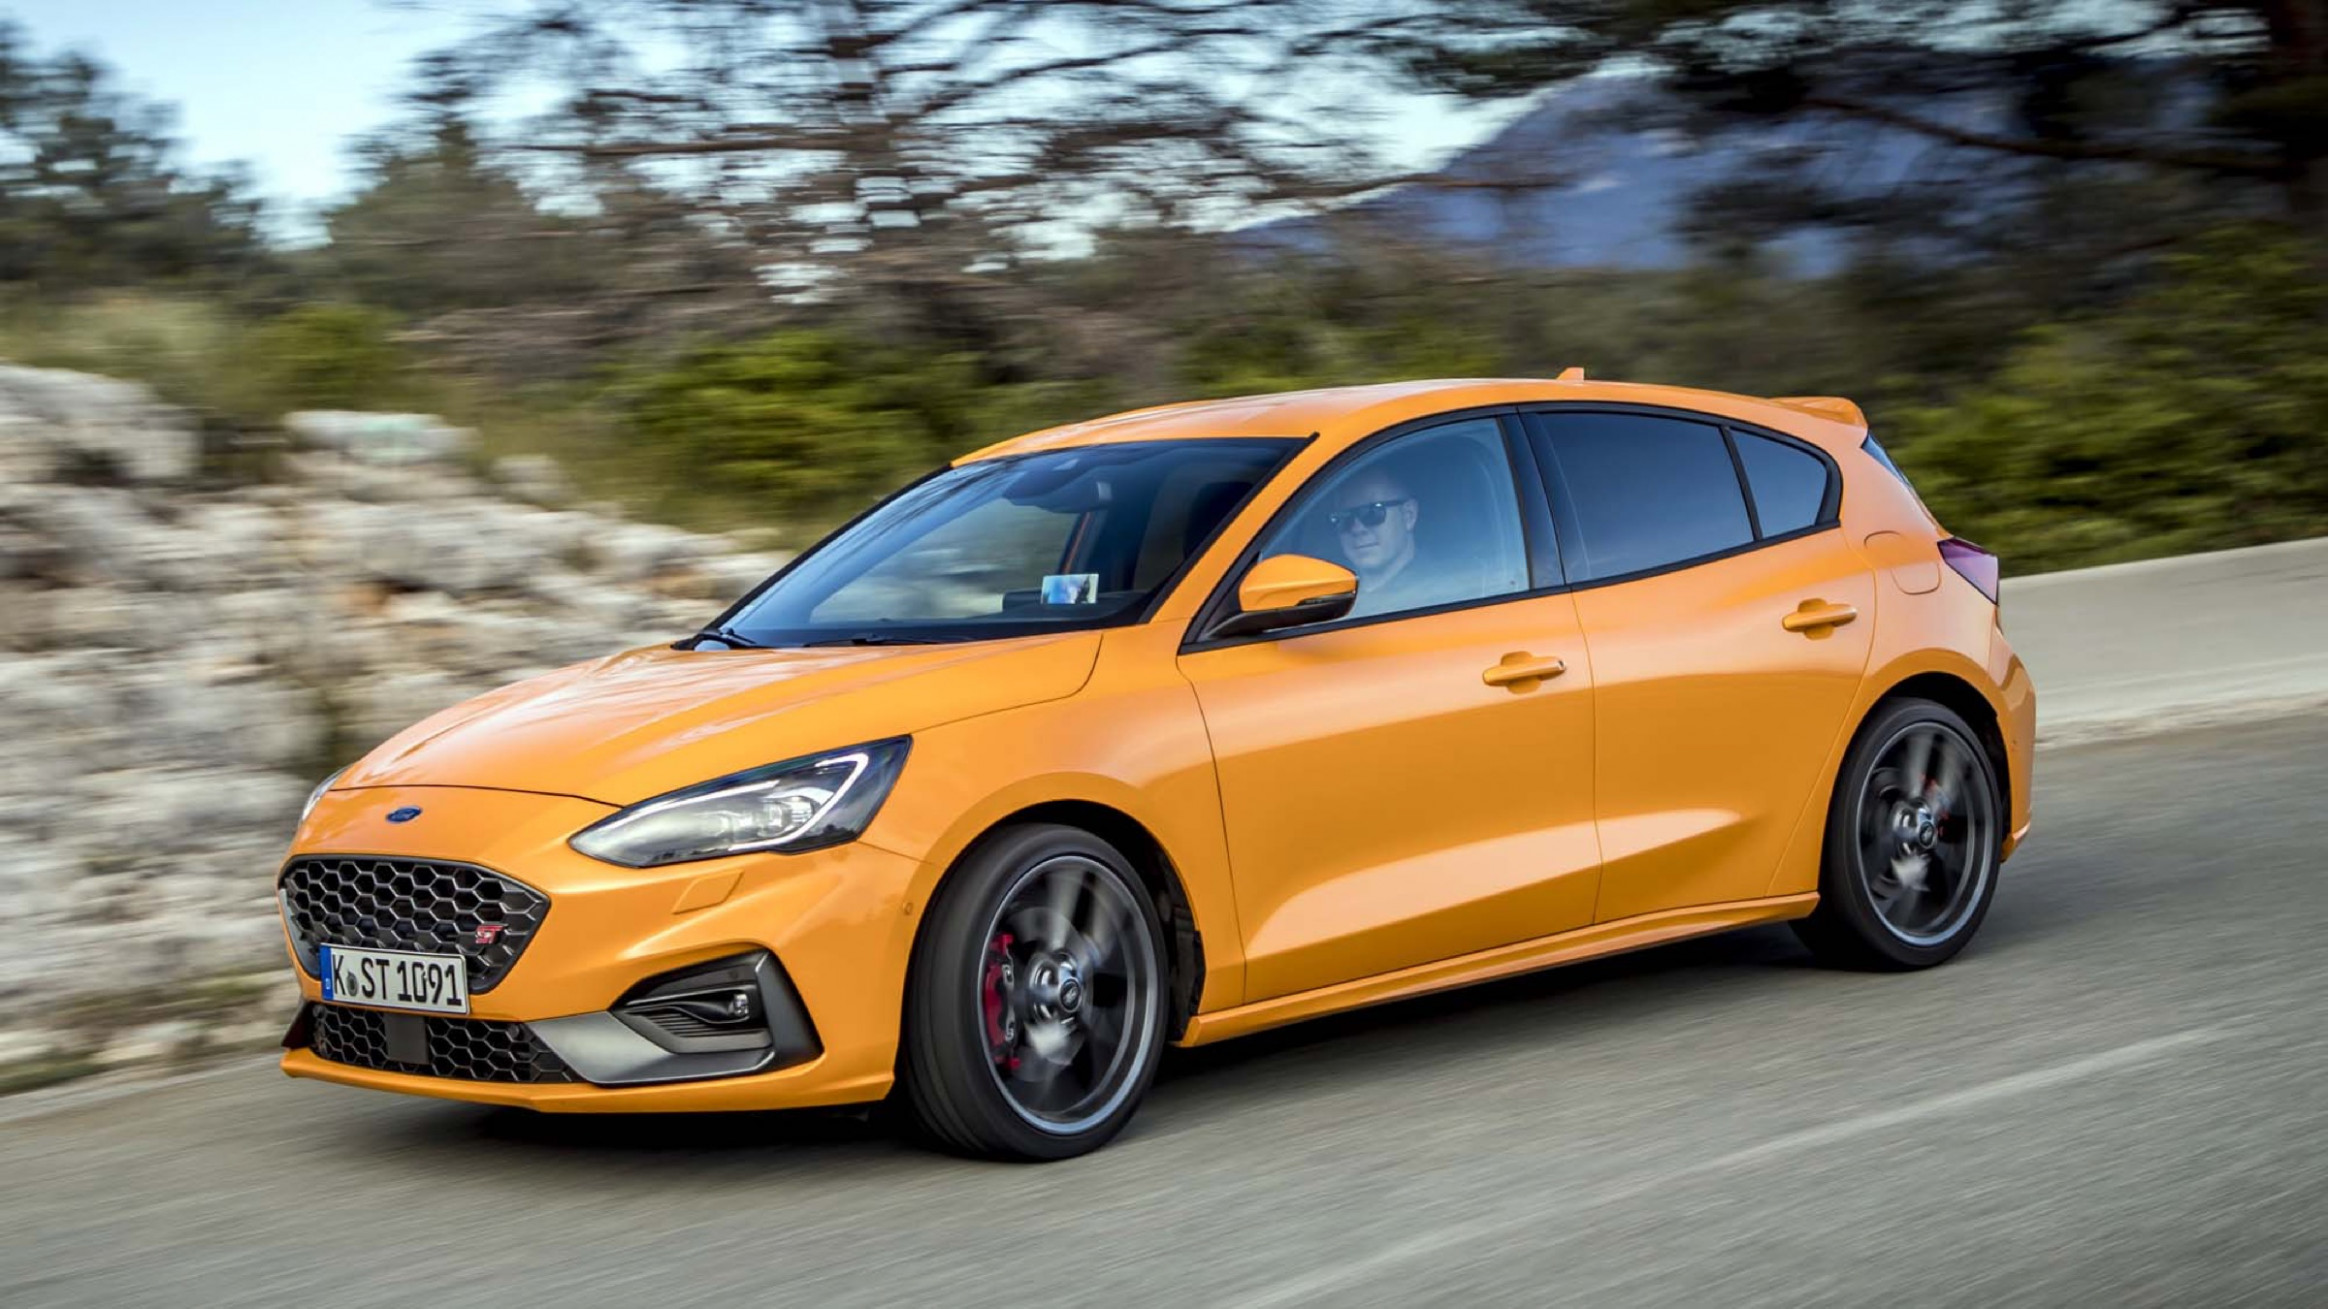 Concept Ford Focus St 2022